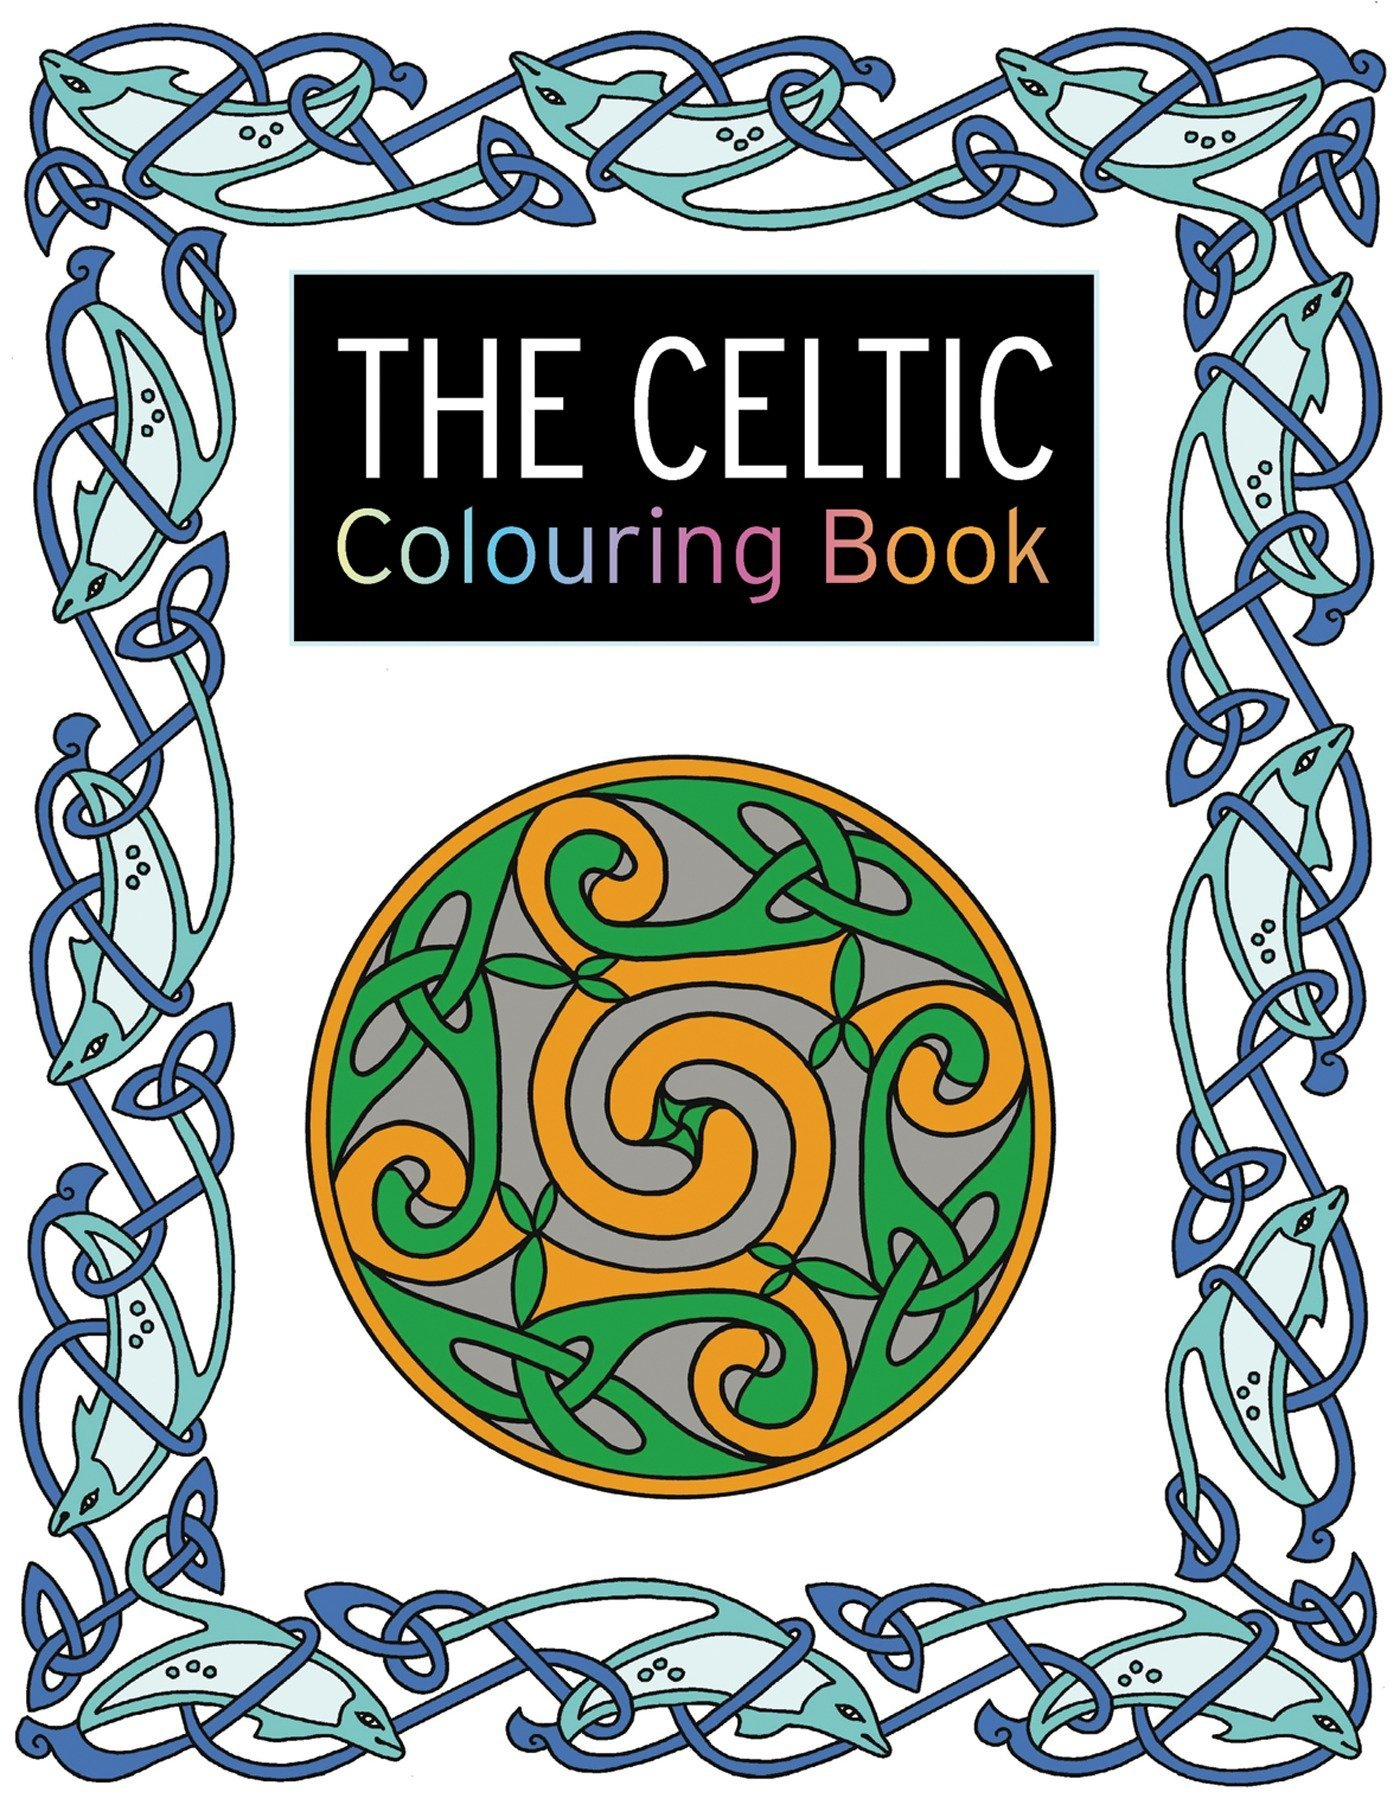 Amazon.com: The Celtic Colouring Book: Large and Small Projects to ...